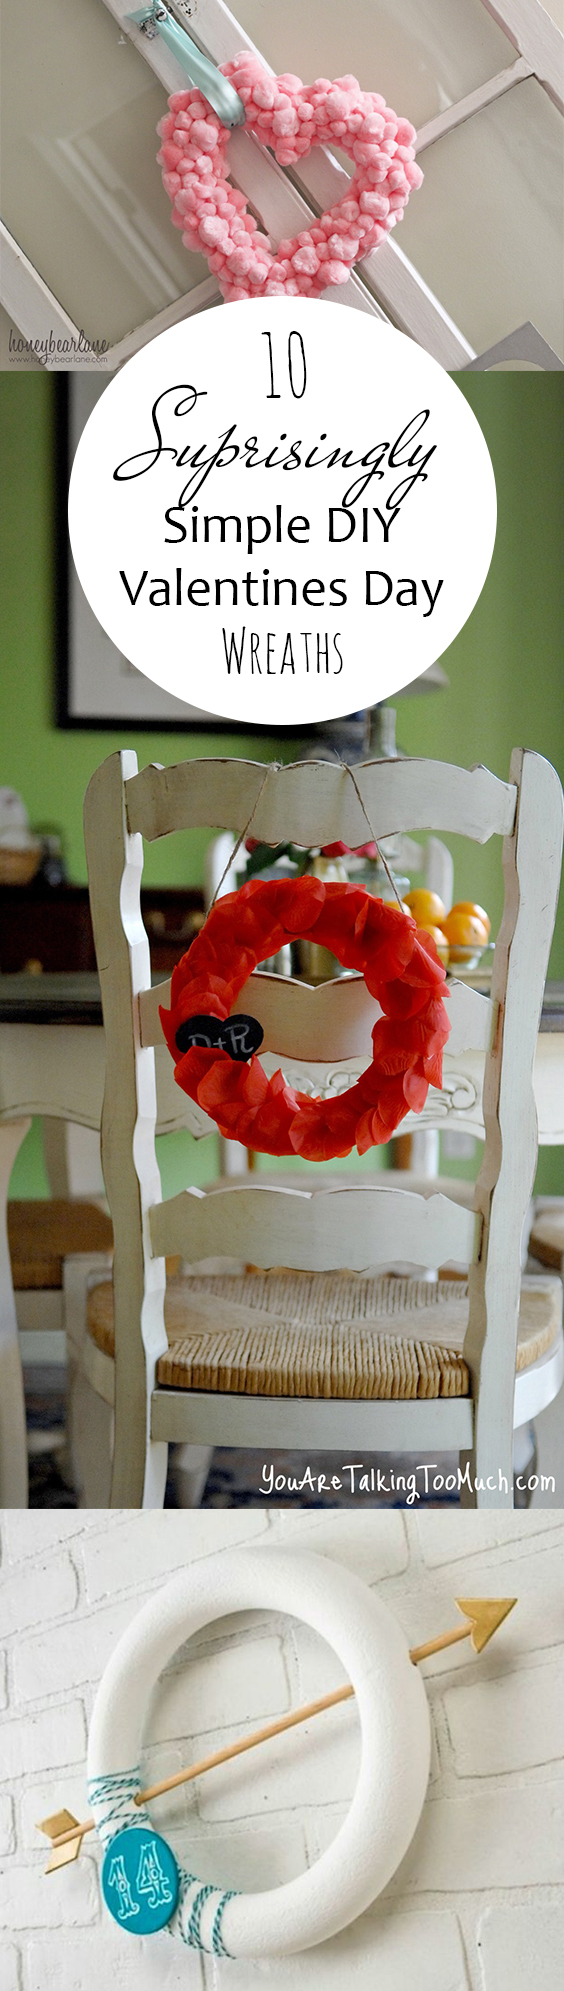 Valentines Day Wreaths, Easy Valentines Day Wreath Ideas, Valentines Day Ideas, Porch Decor, Easy Wreathes, DIY Porch Decor, How to Decorate Your Porch, Valentines Day Porch Decor